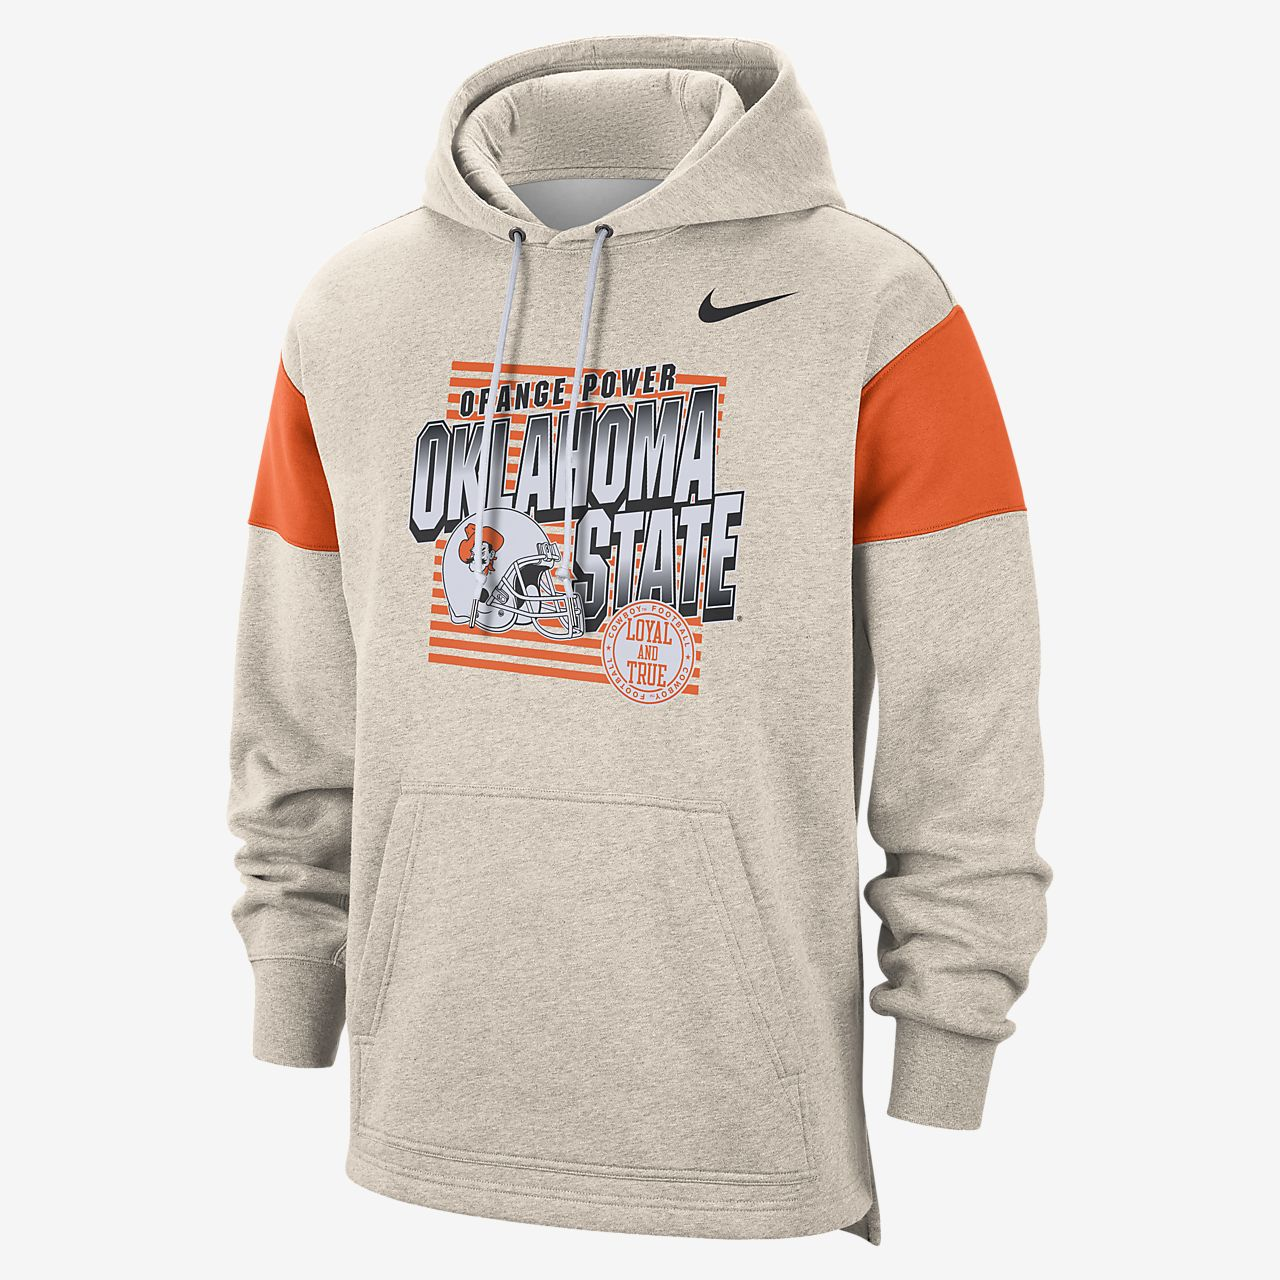 Nike College (Oklahoma State) Men's Pullover Hoodie